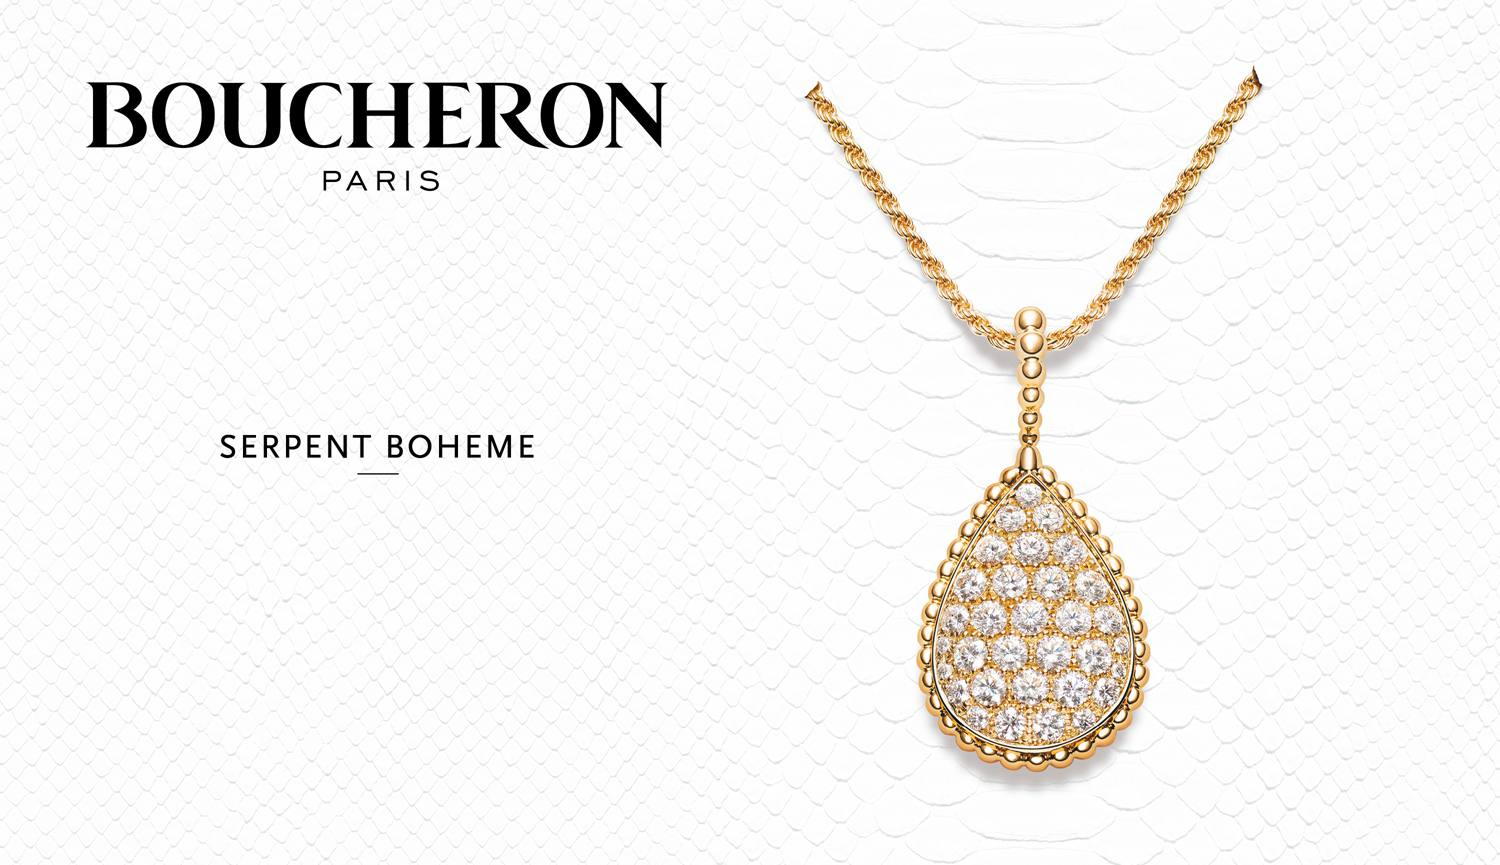 Boucheron-SG-Serpent Boheme